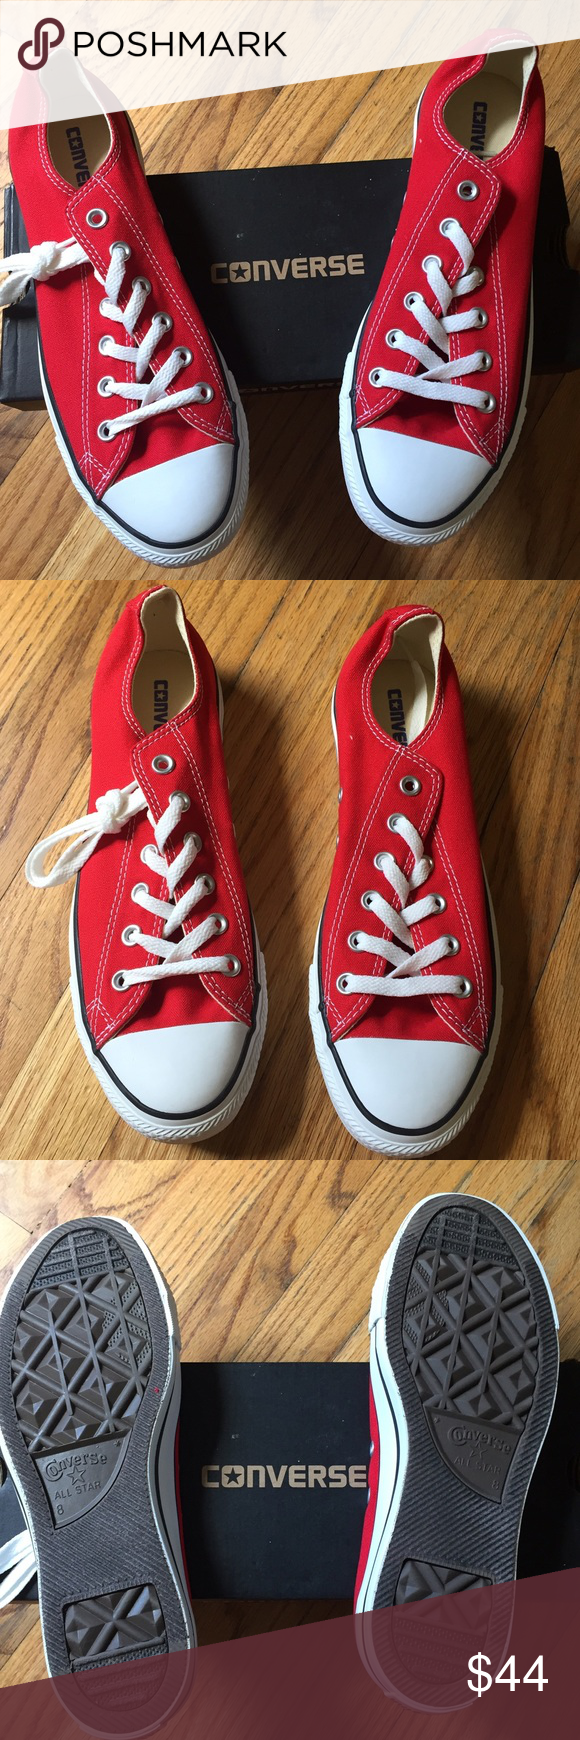 NWT Red Converse Unisex Sneakers. Size